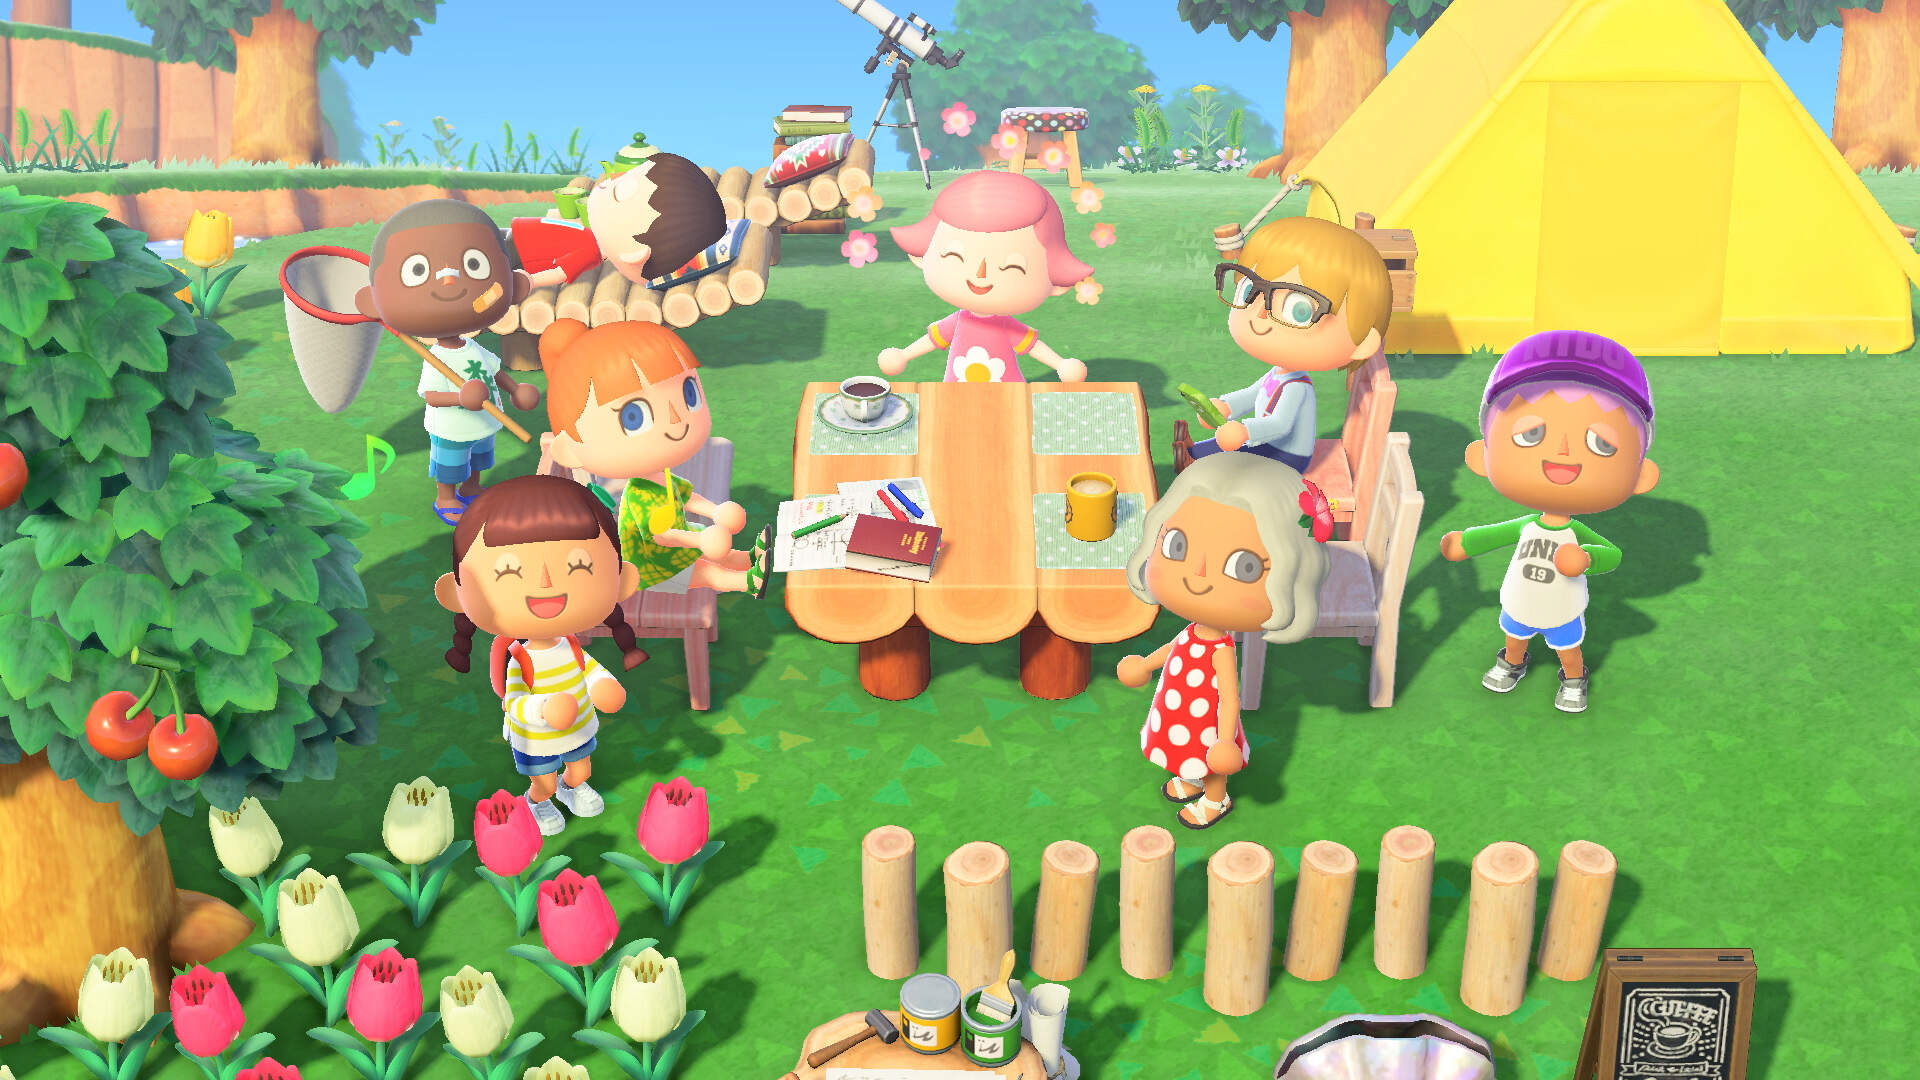 Competitive Musical Chairs Brings Out the Beast in Animal Crossing: New Horizons Players